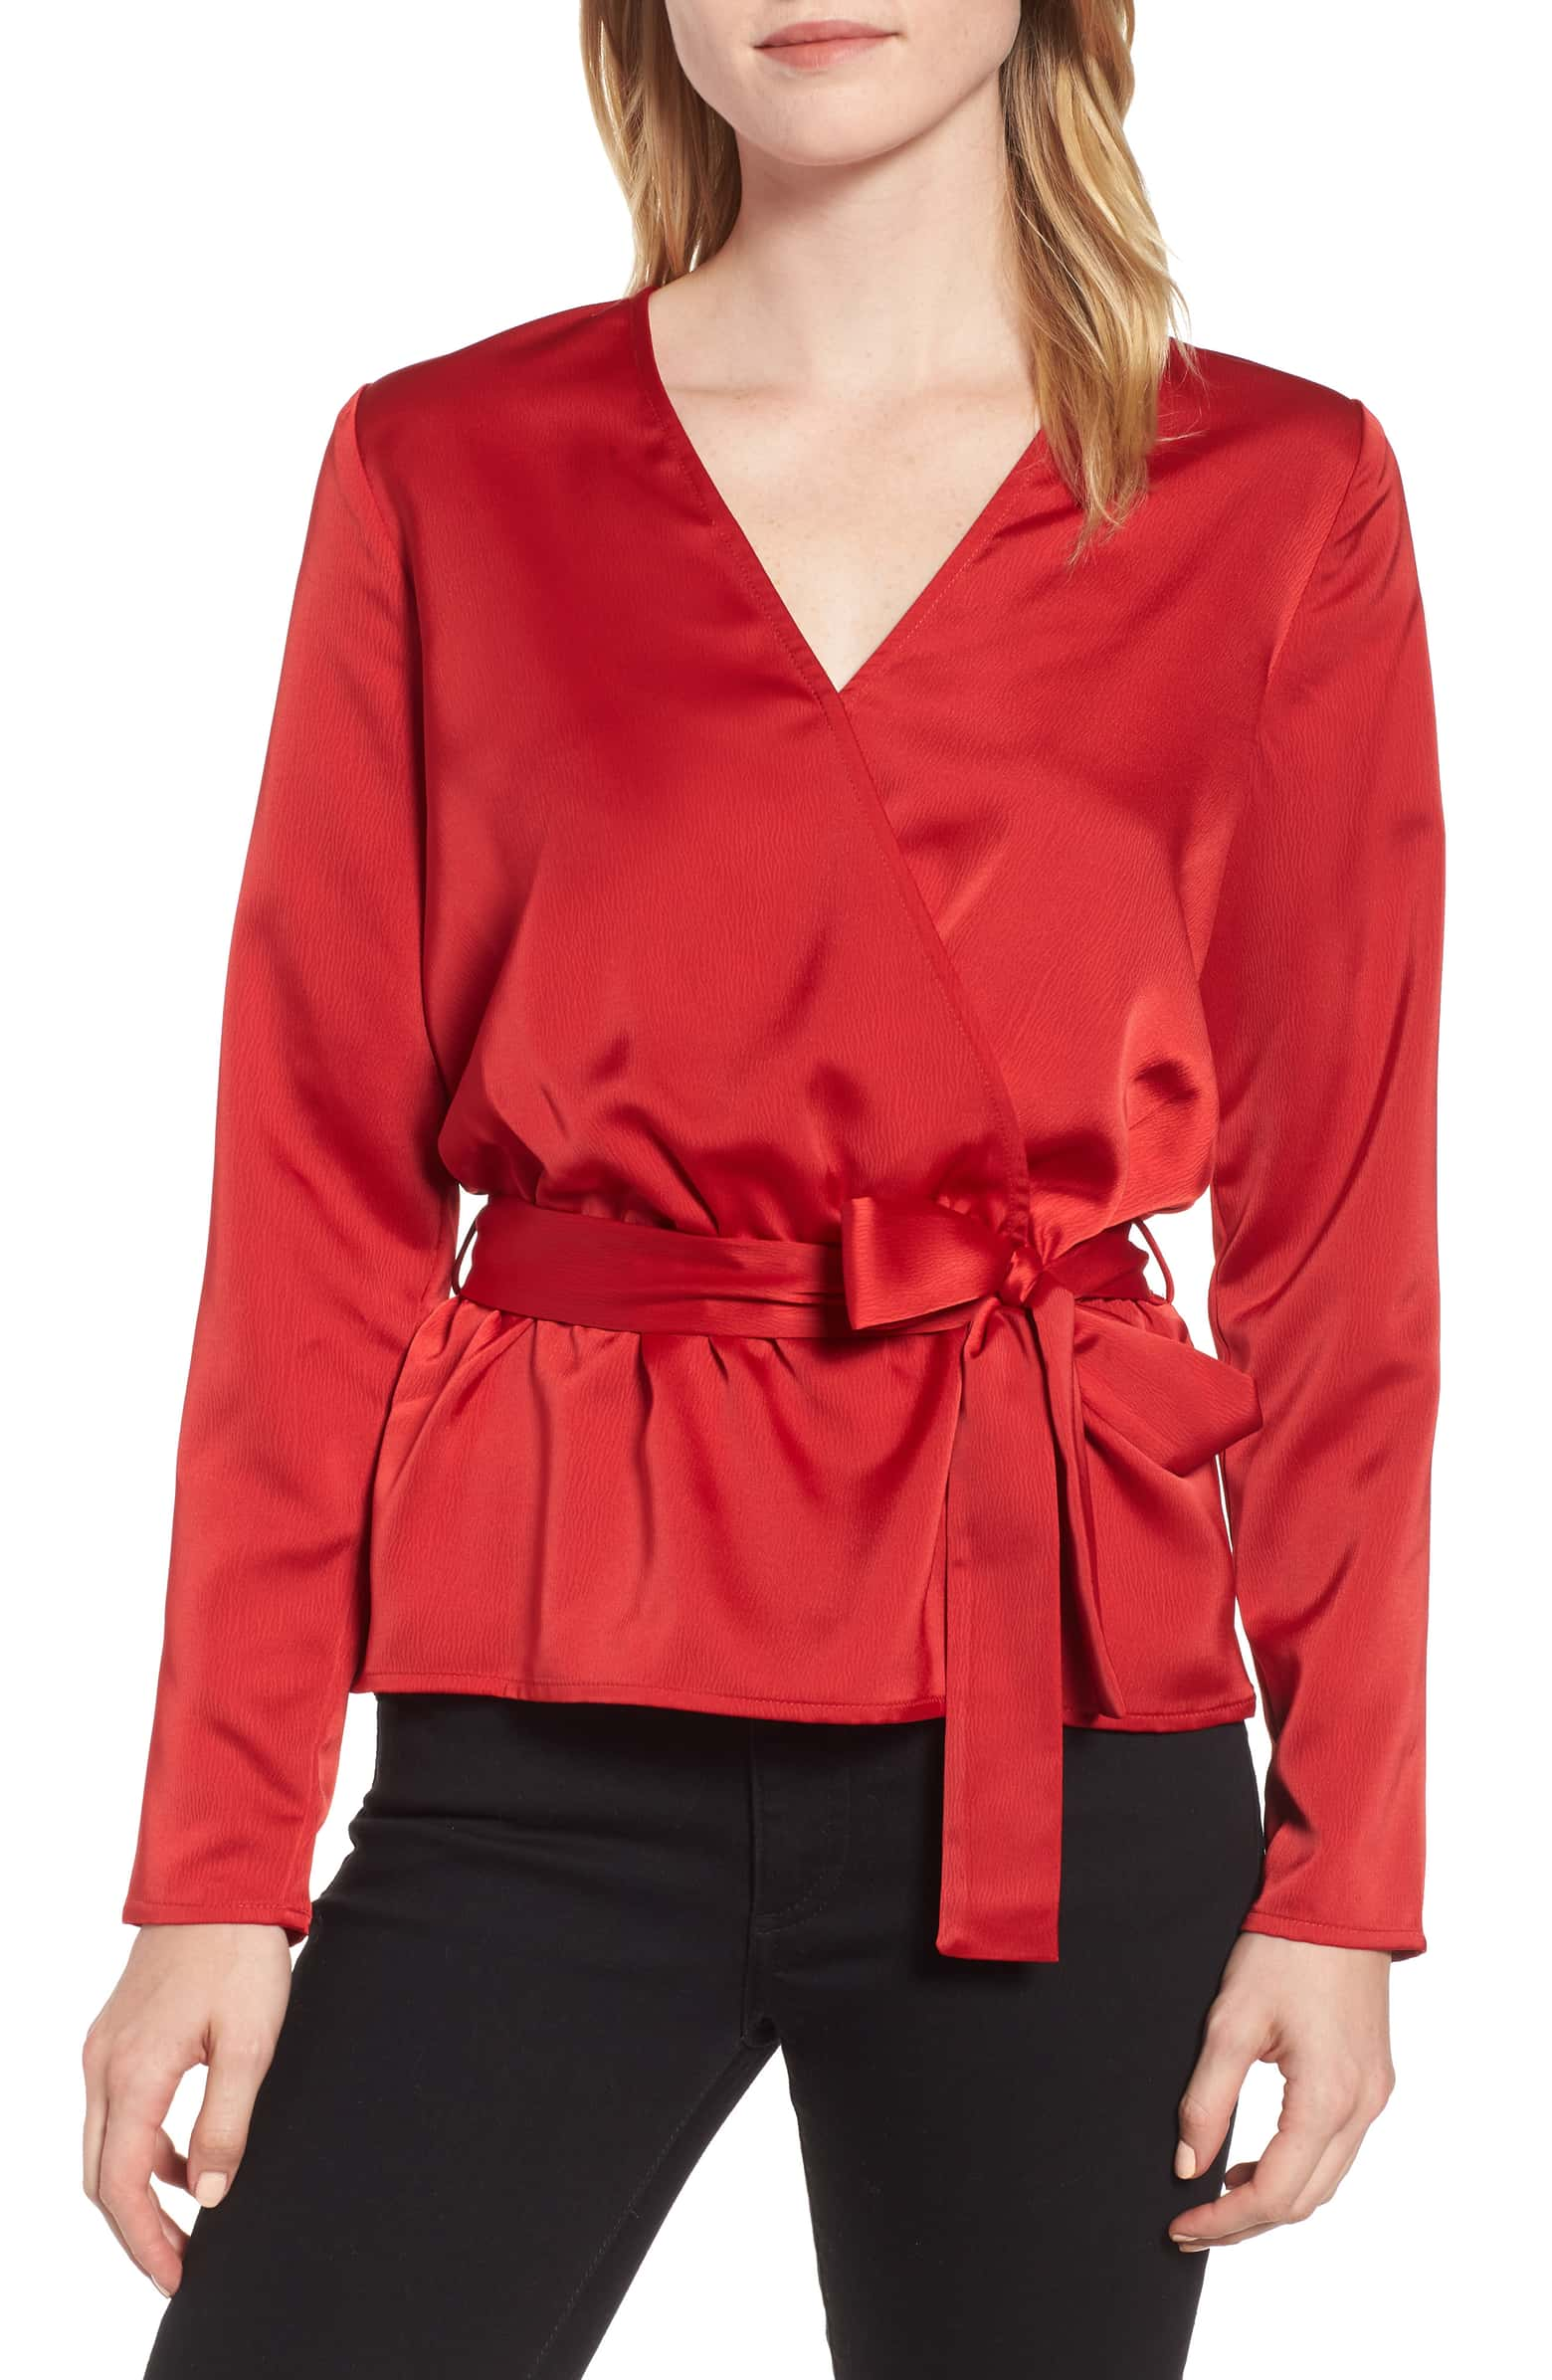 Nordstrom Gibson x Glam Faux Wrap Top, Size XS